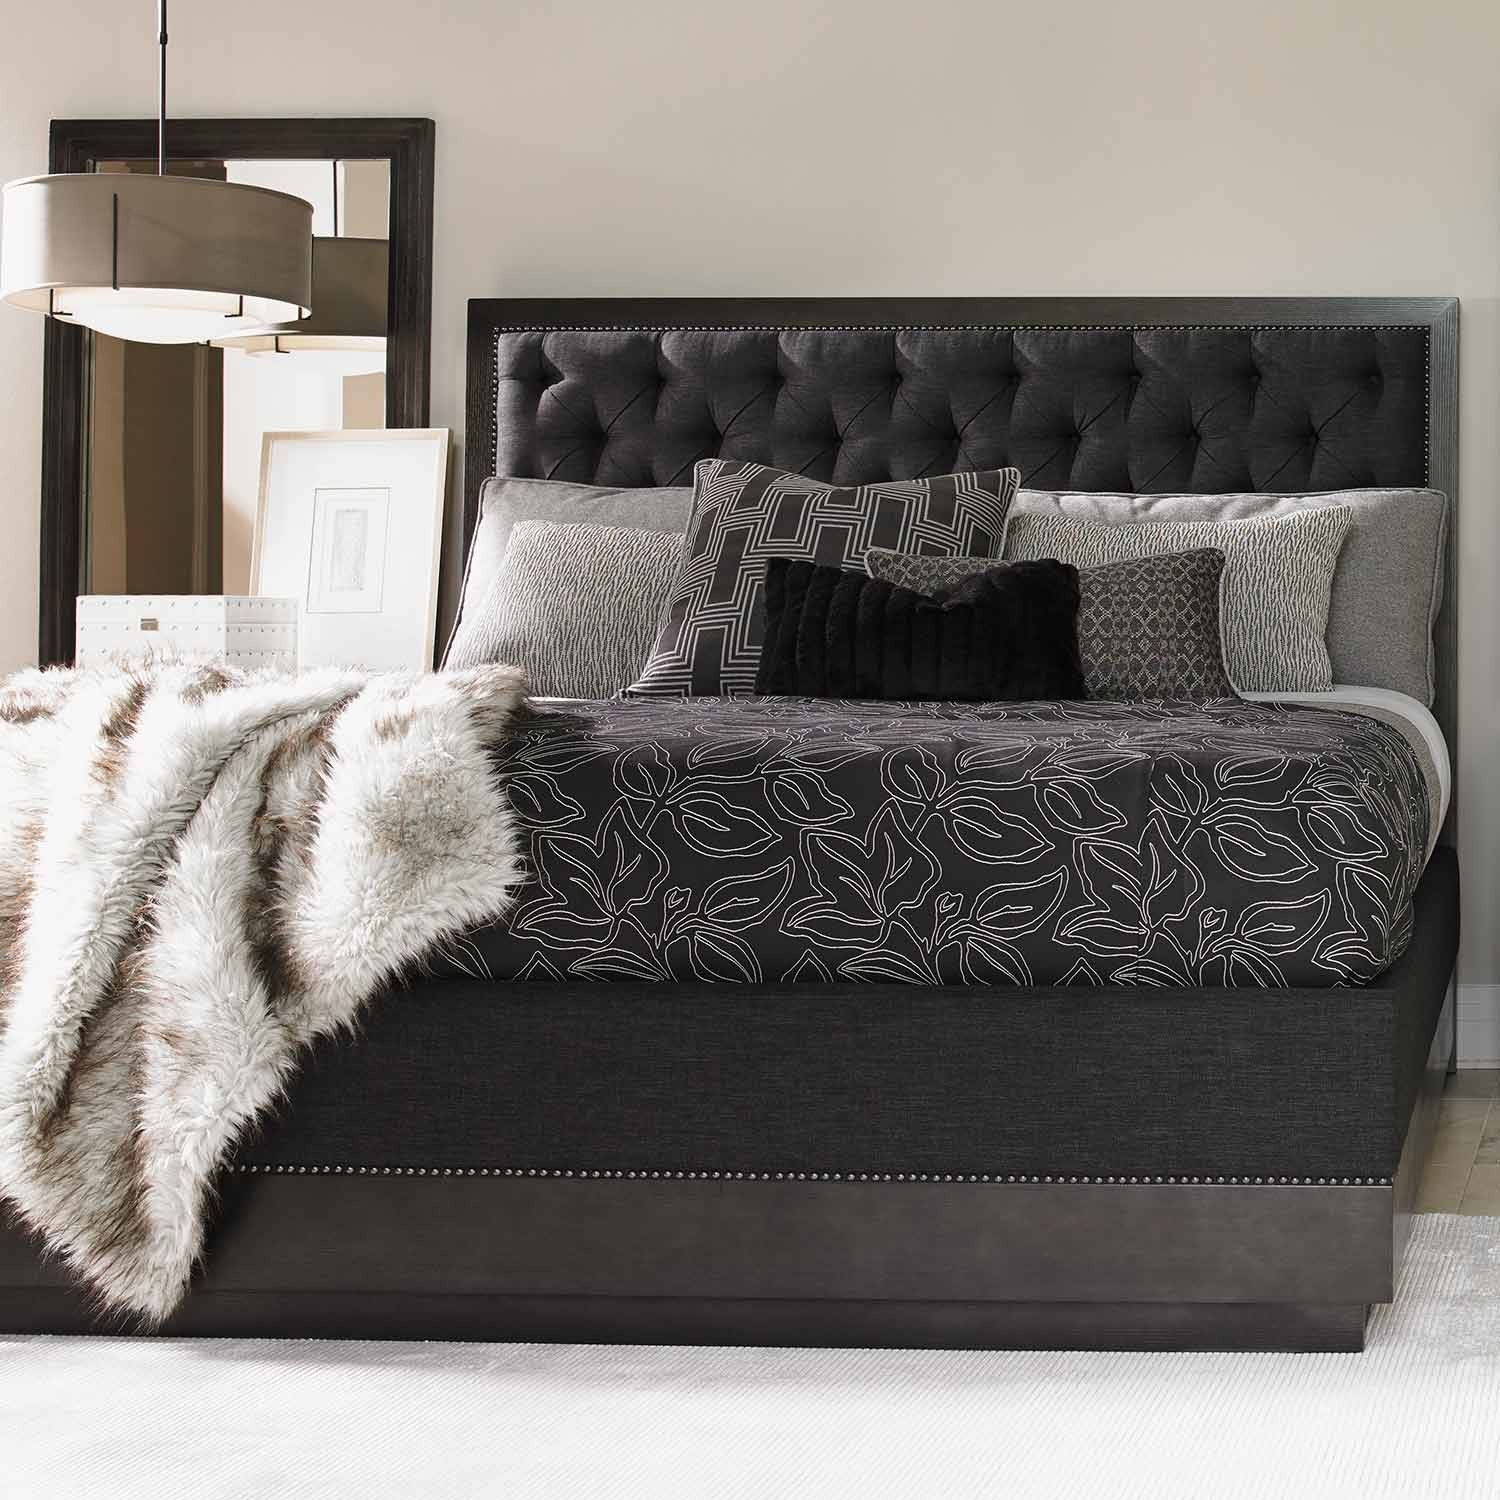 The Carrera Maranello Fabric Upholstered Bed In Gray Mist By